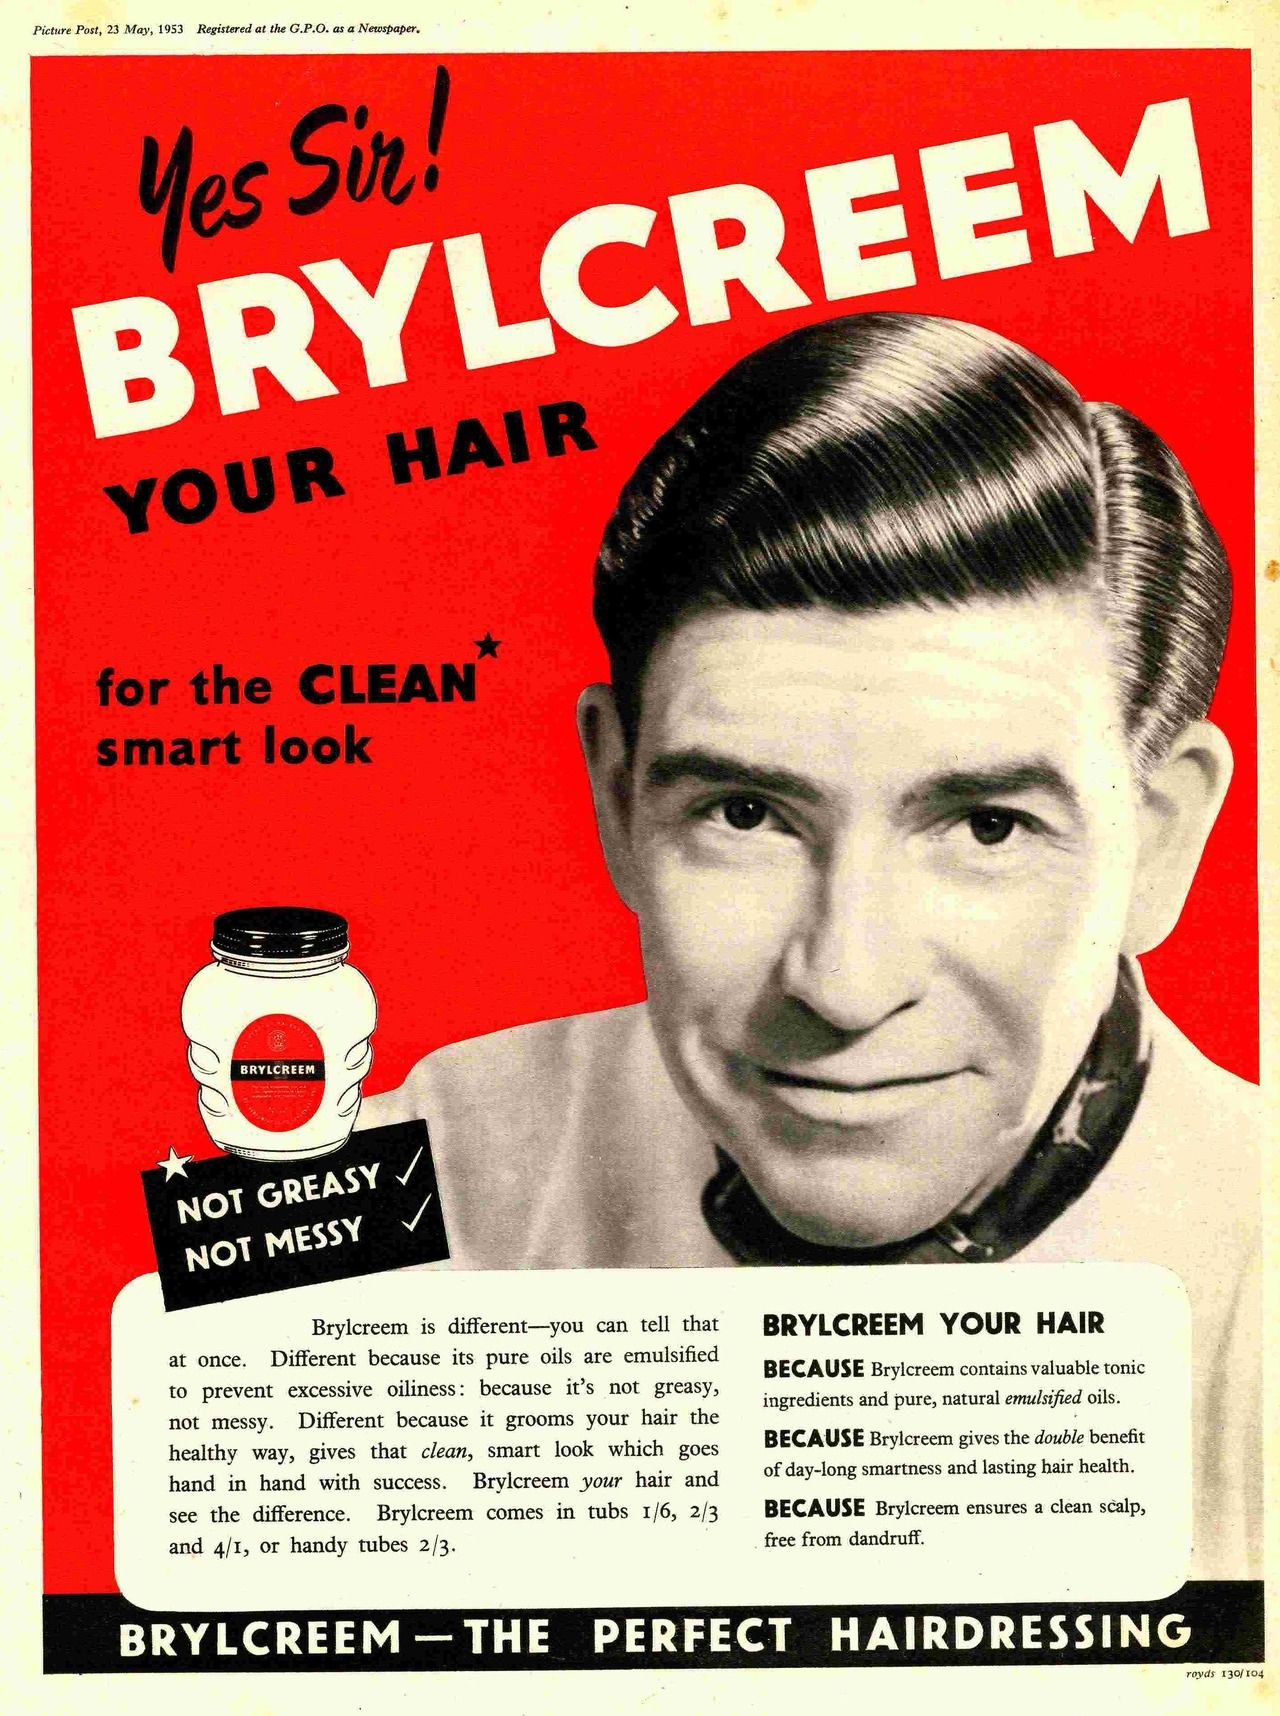 Brylcreem Comb Hair Smart Look Old Vintage Retro Product Advert Picture Poster